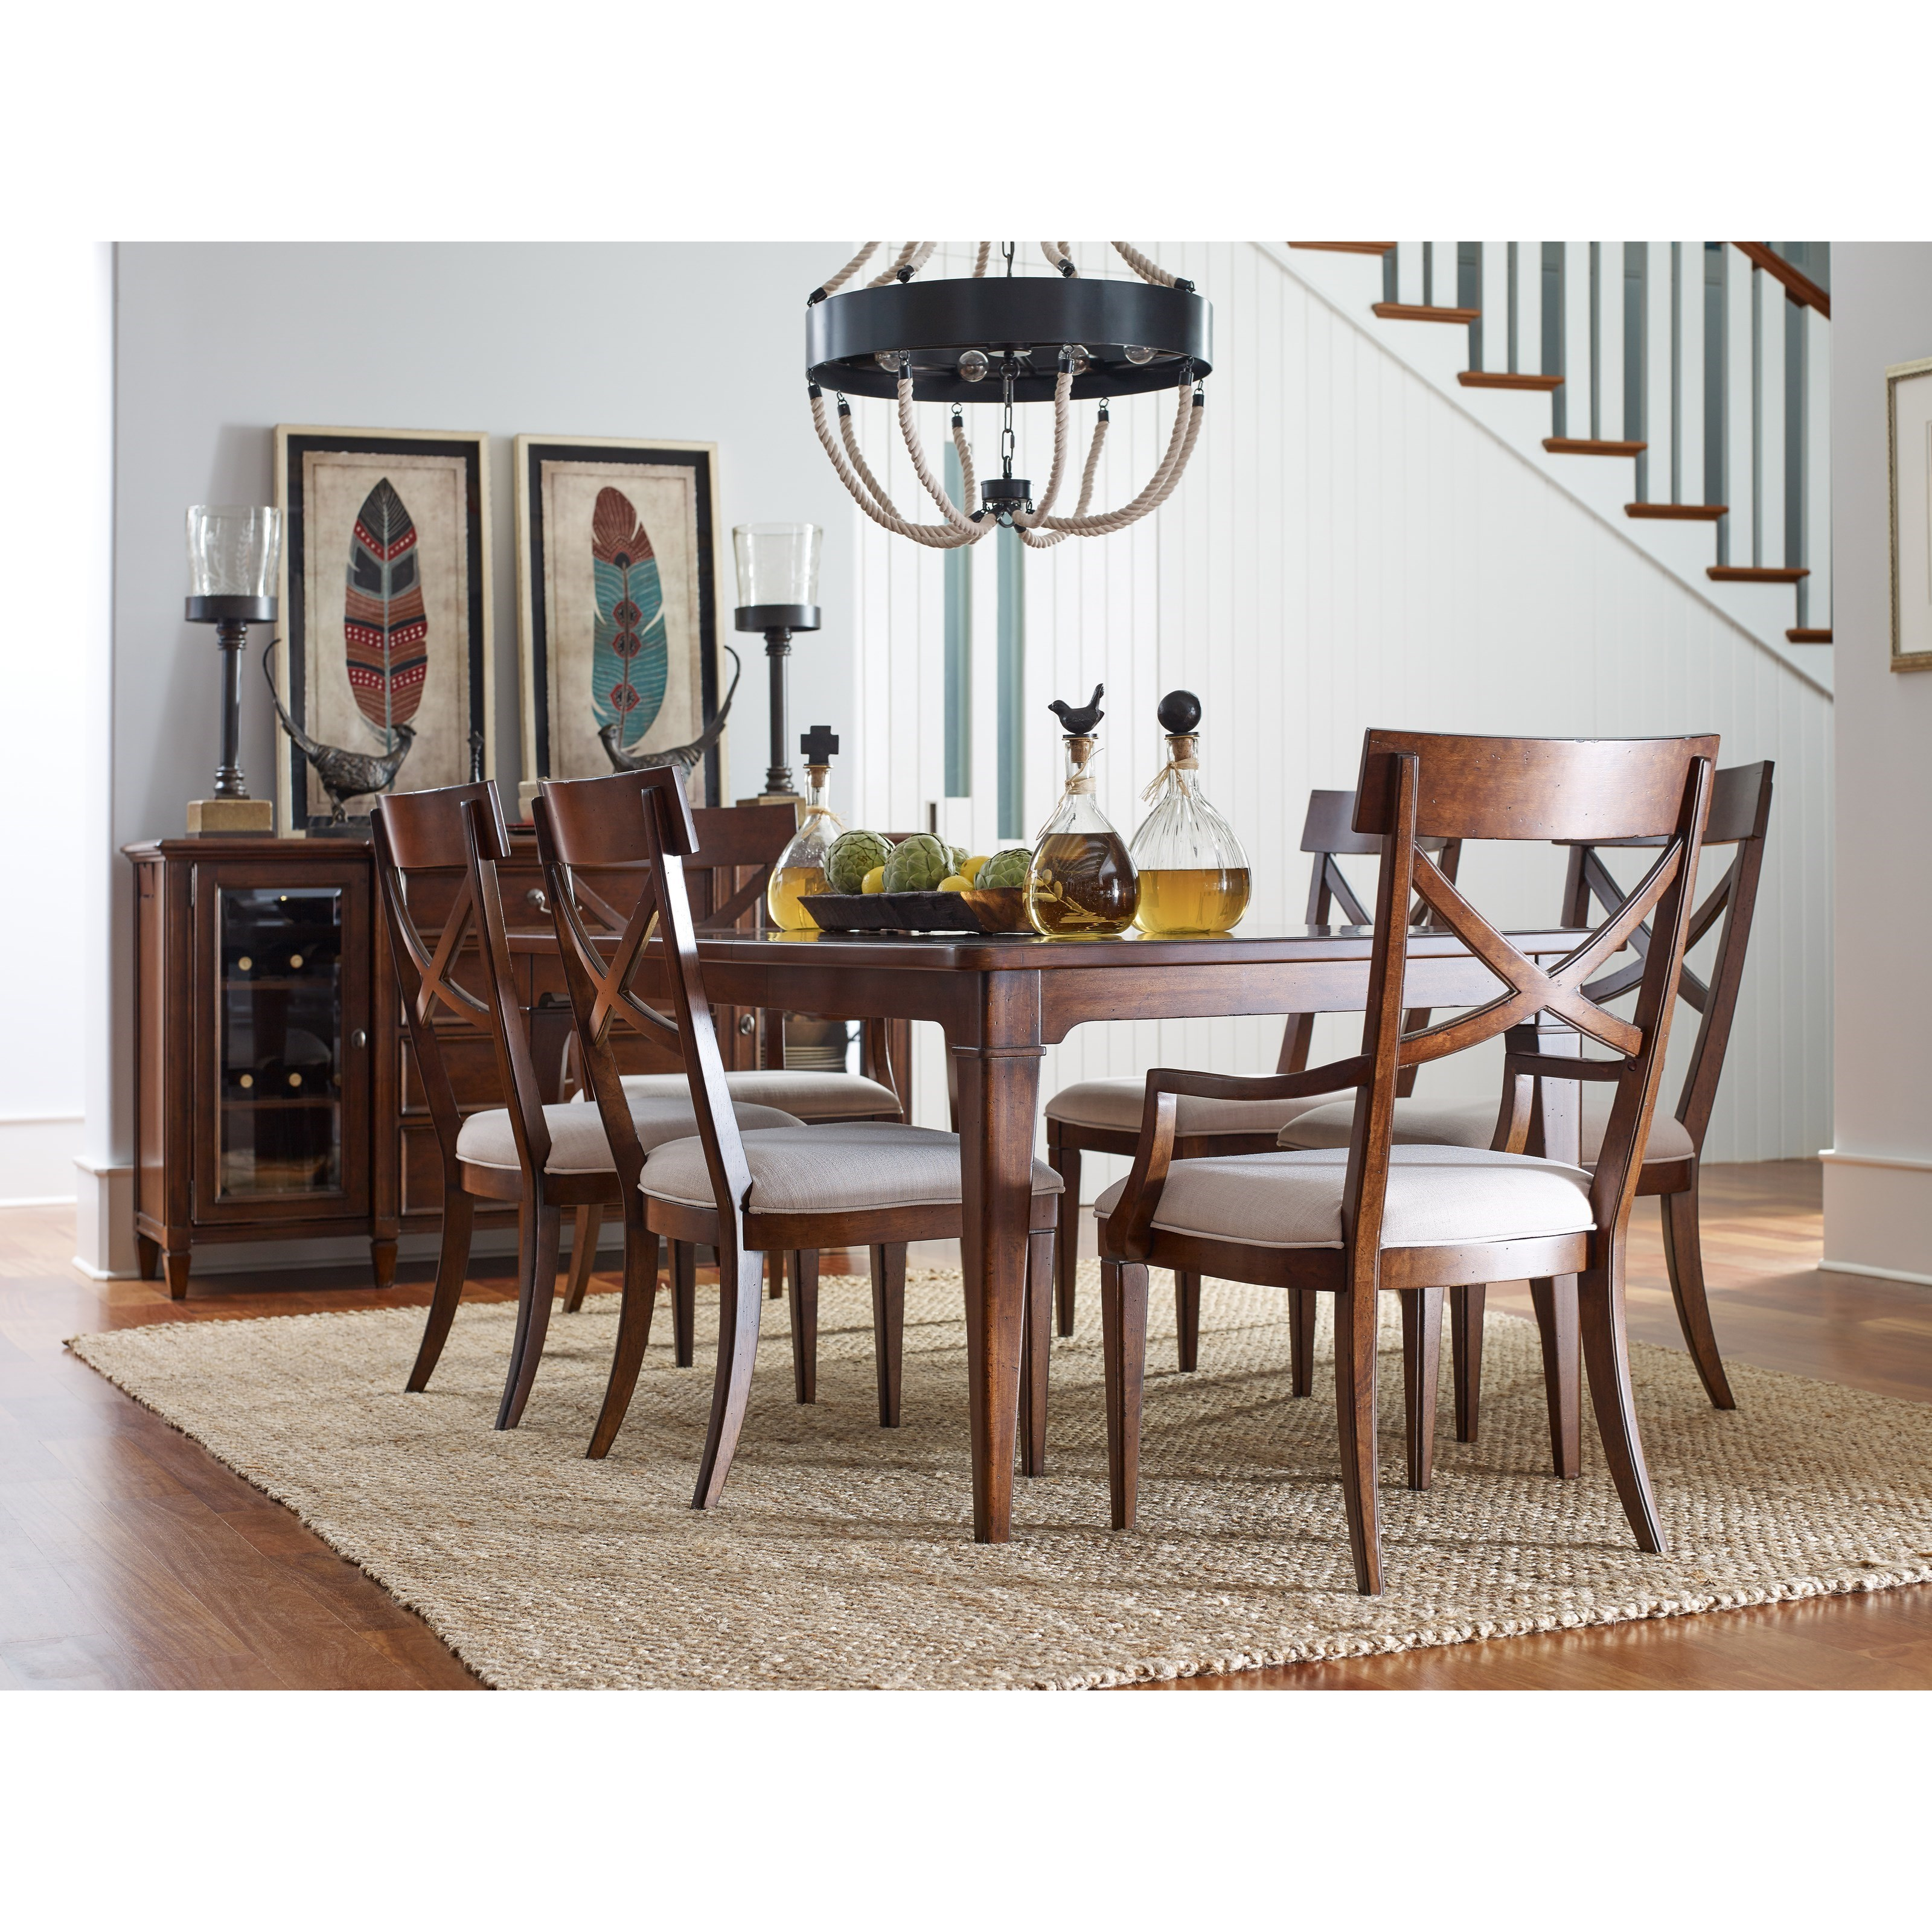 Rachael Ray Home by Legacy Classic Upstate Formal Dining Room Group - Item Number: 6040 Dining Room Group 3